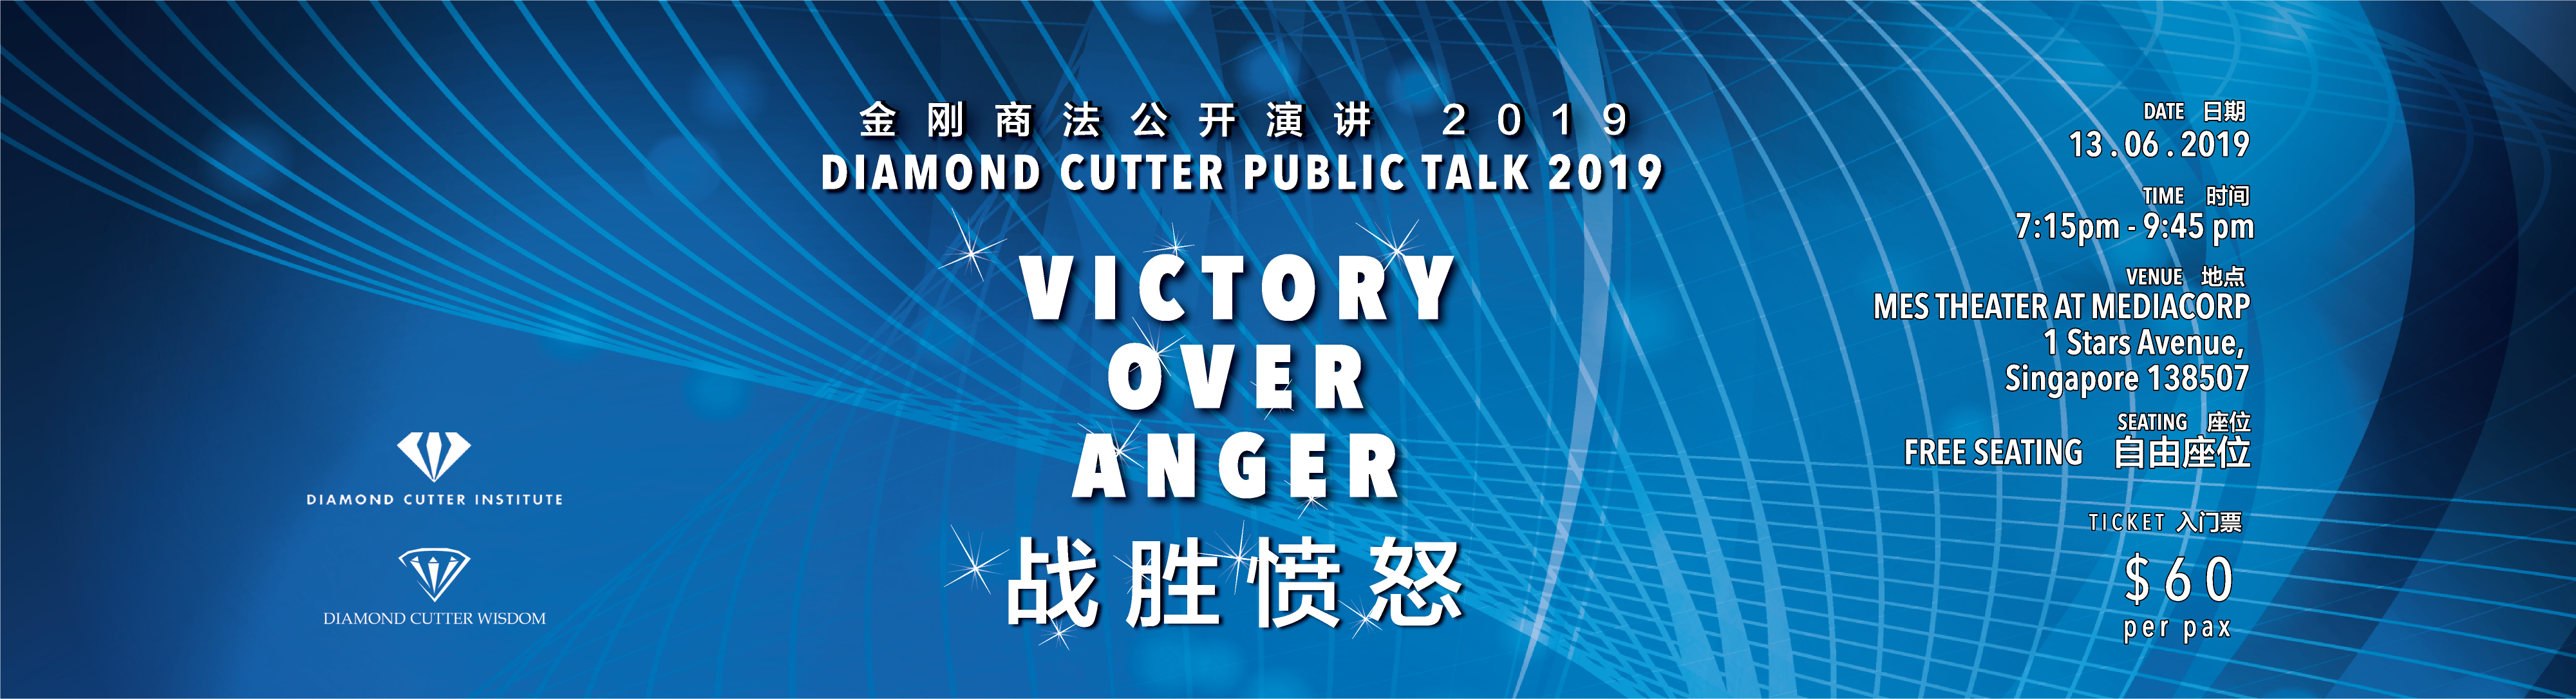 Diamond Cutter Public Talk 2019 Banner Image